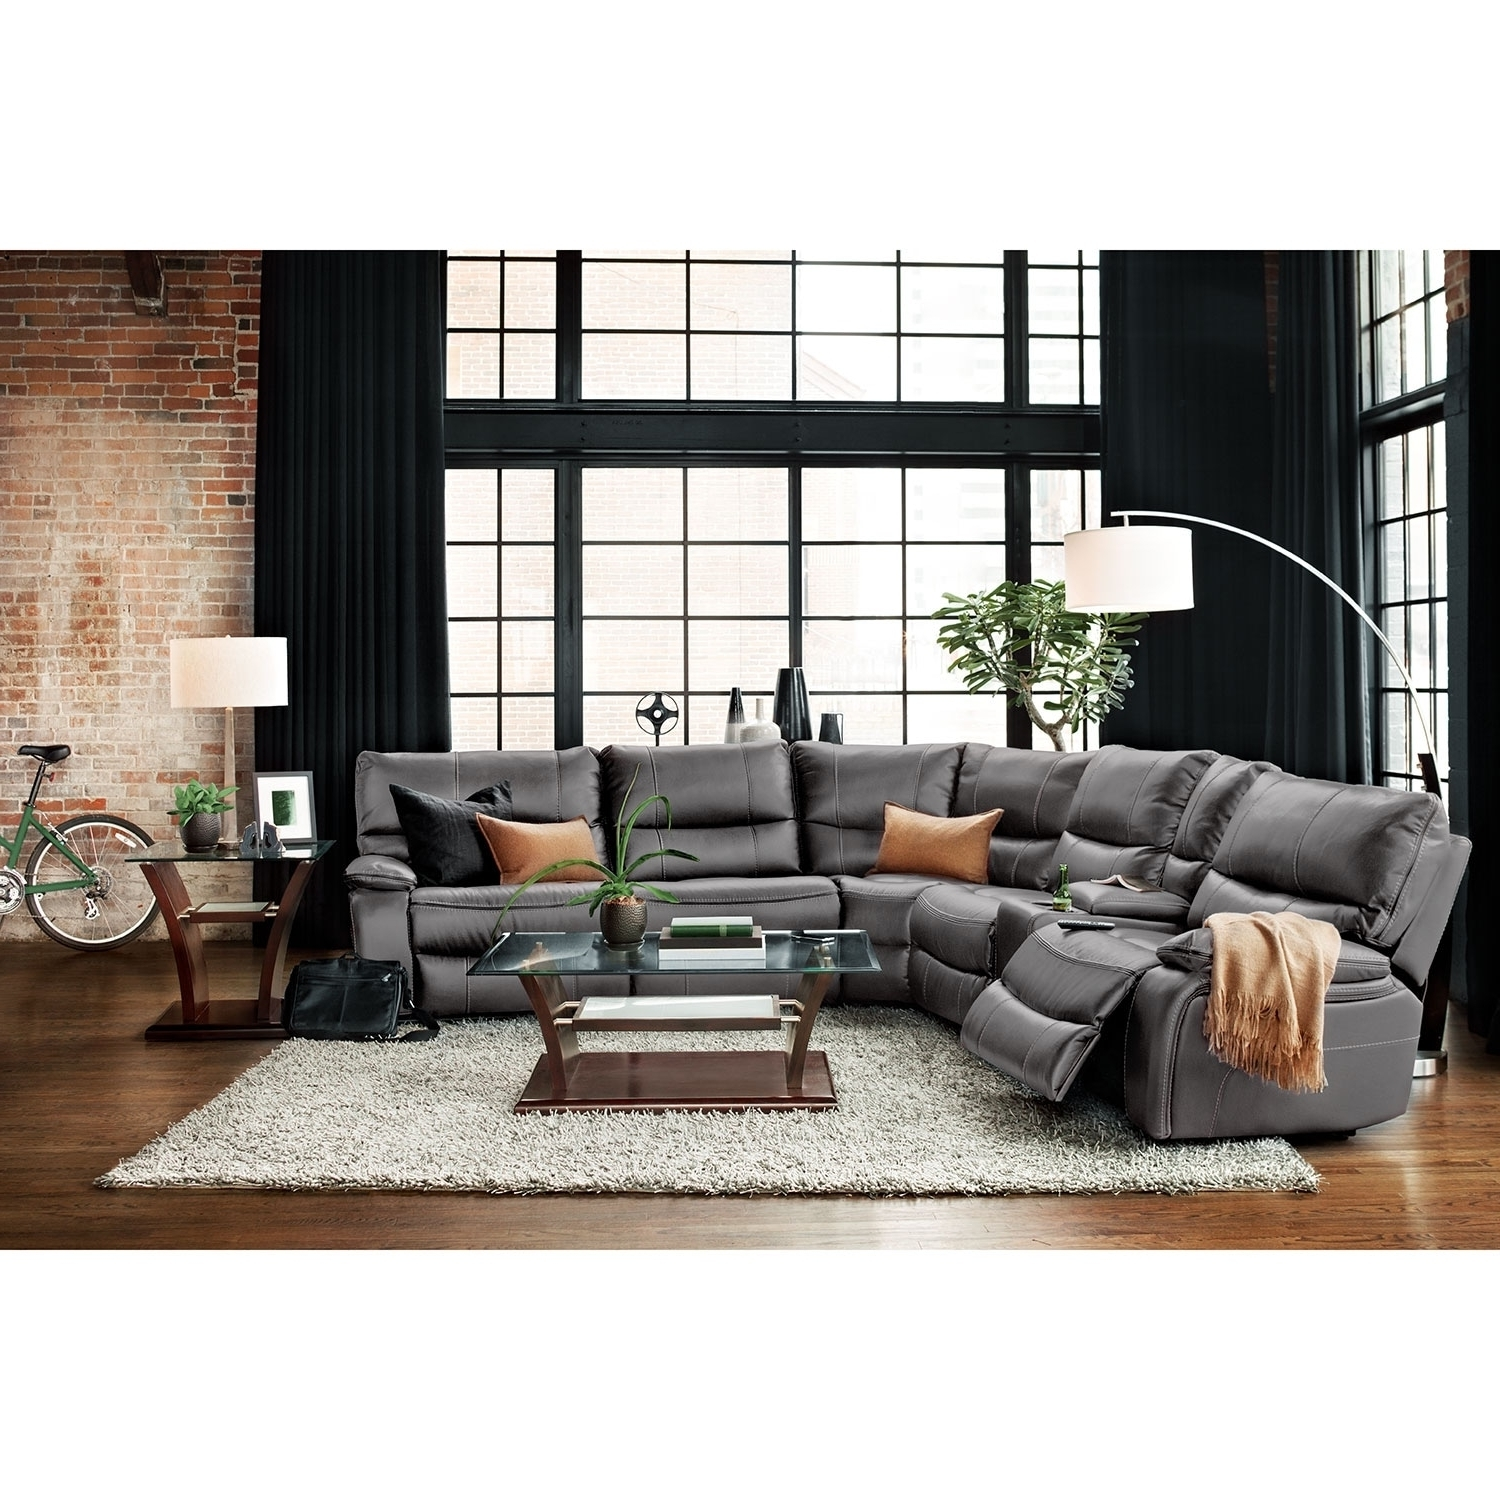 Orlando Sectional Sofas In Best And Newest Orlando 6 Piece Power Reclining Sectional With 1 Stationary Chair (View 7 of 15)